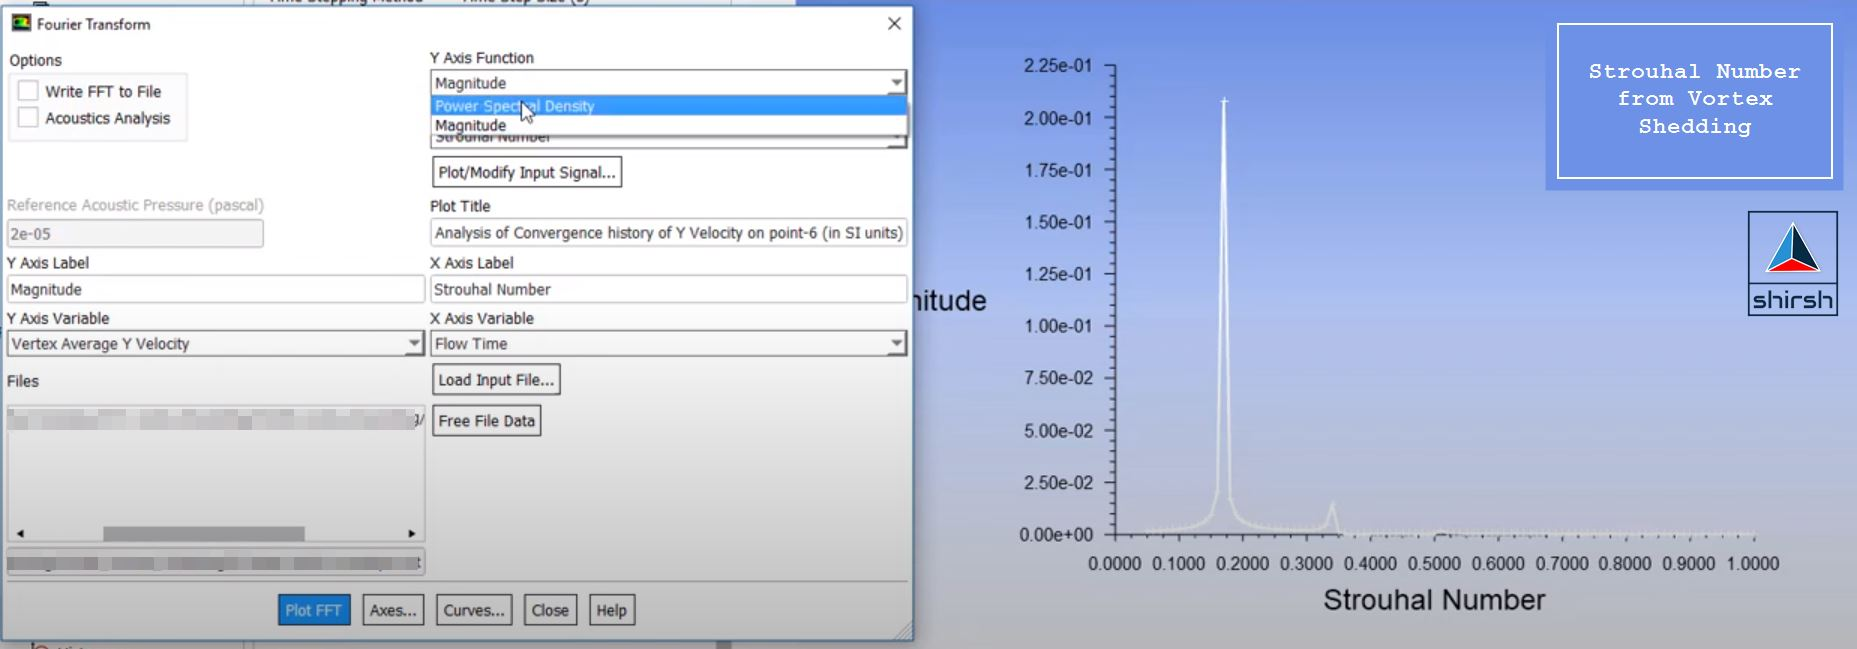 Strouhal Number prediction from Transient CFD analysis